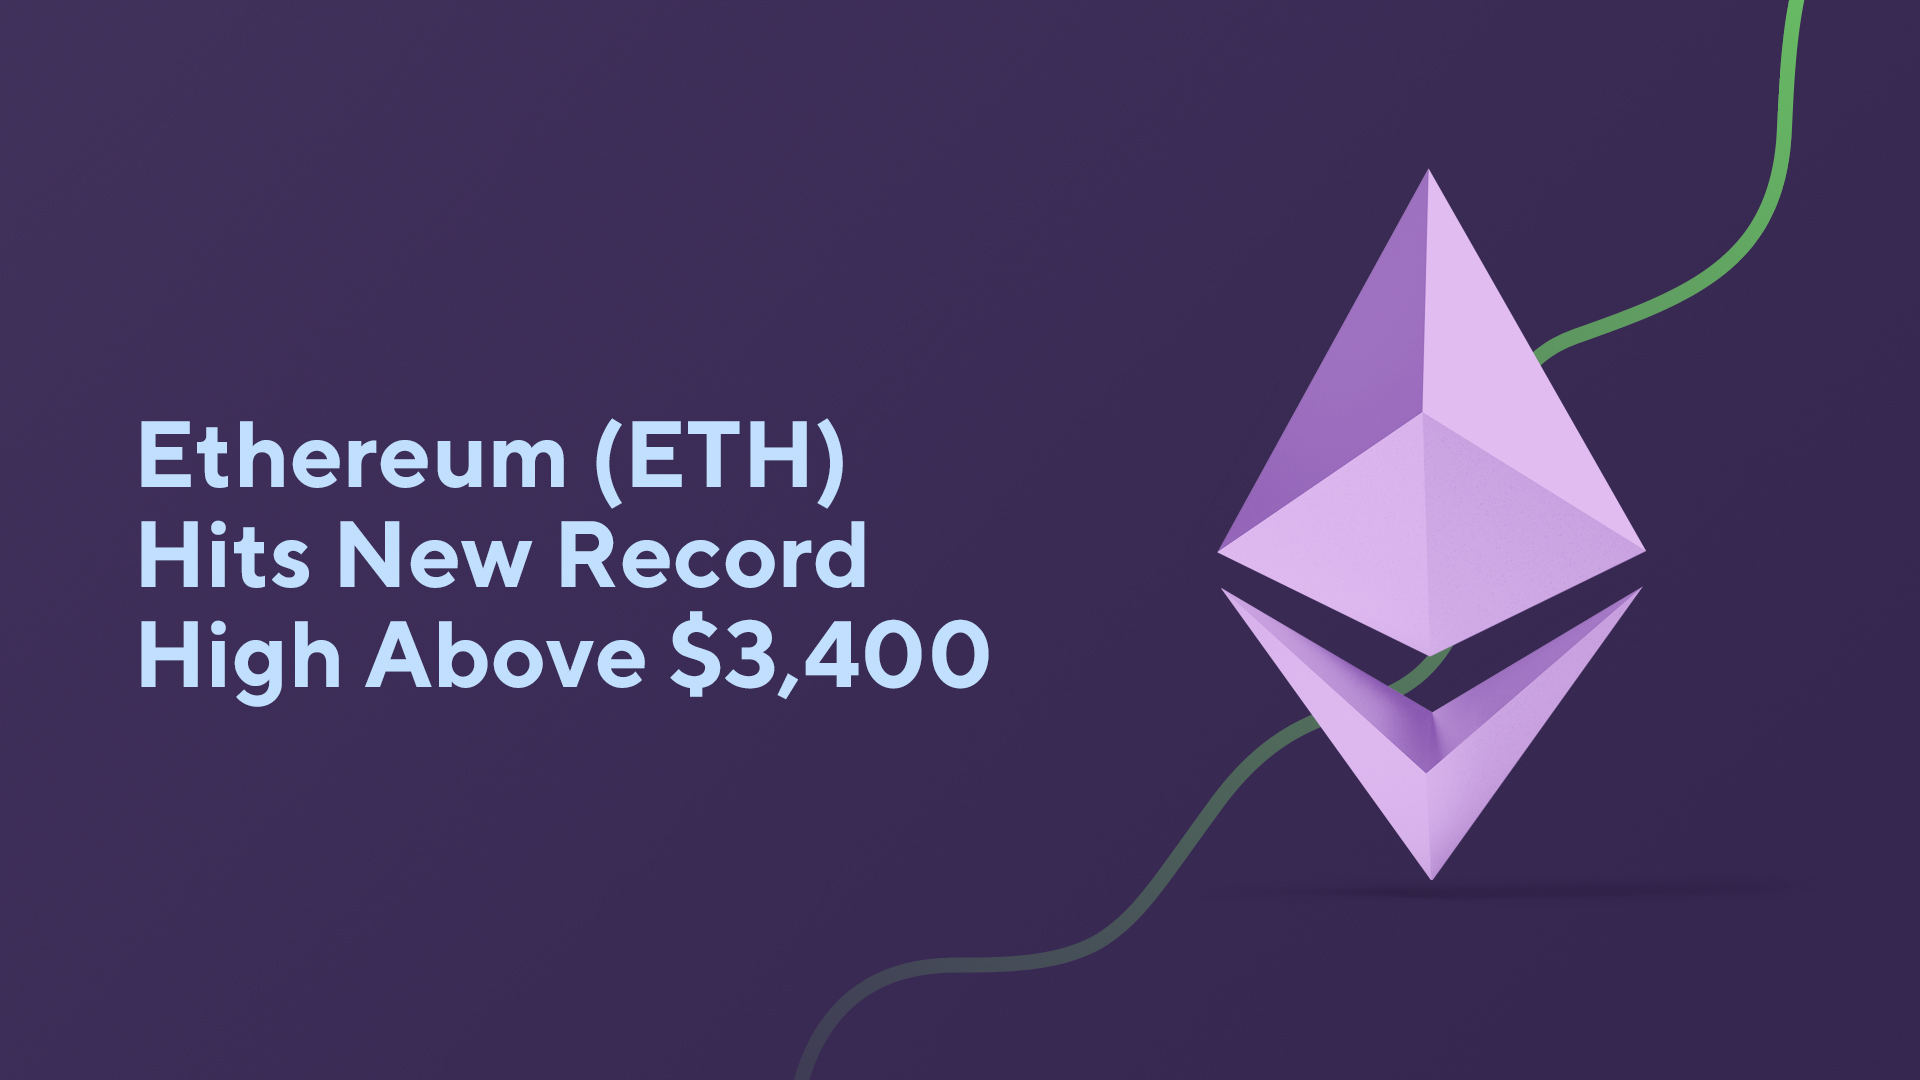 Ethereum (ETH) Hits New Record High Above $3,400